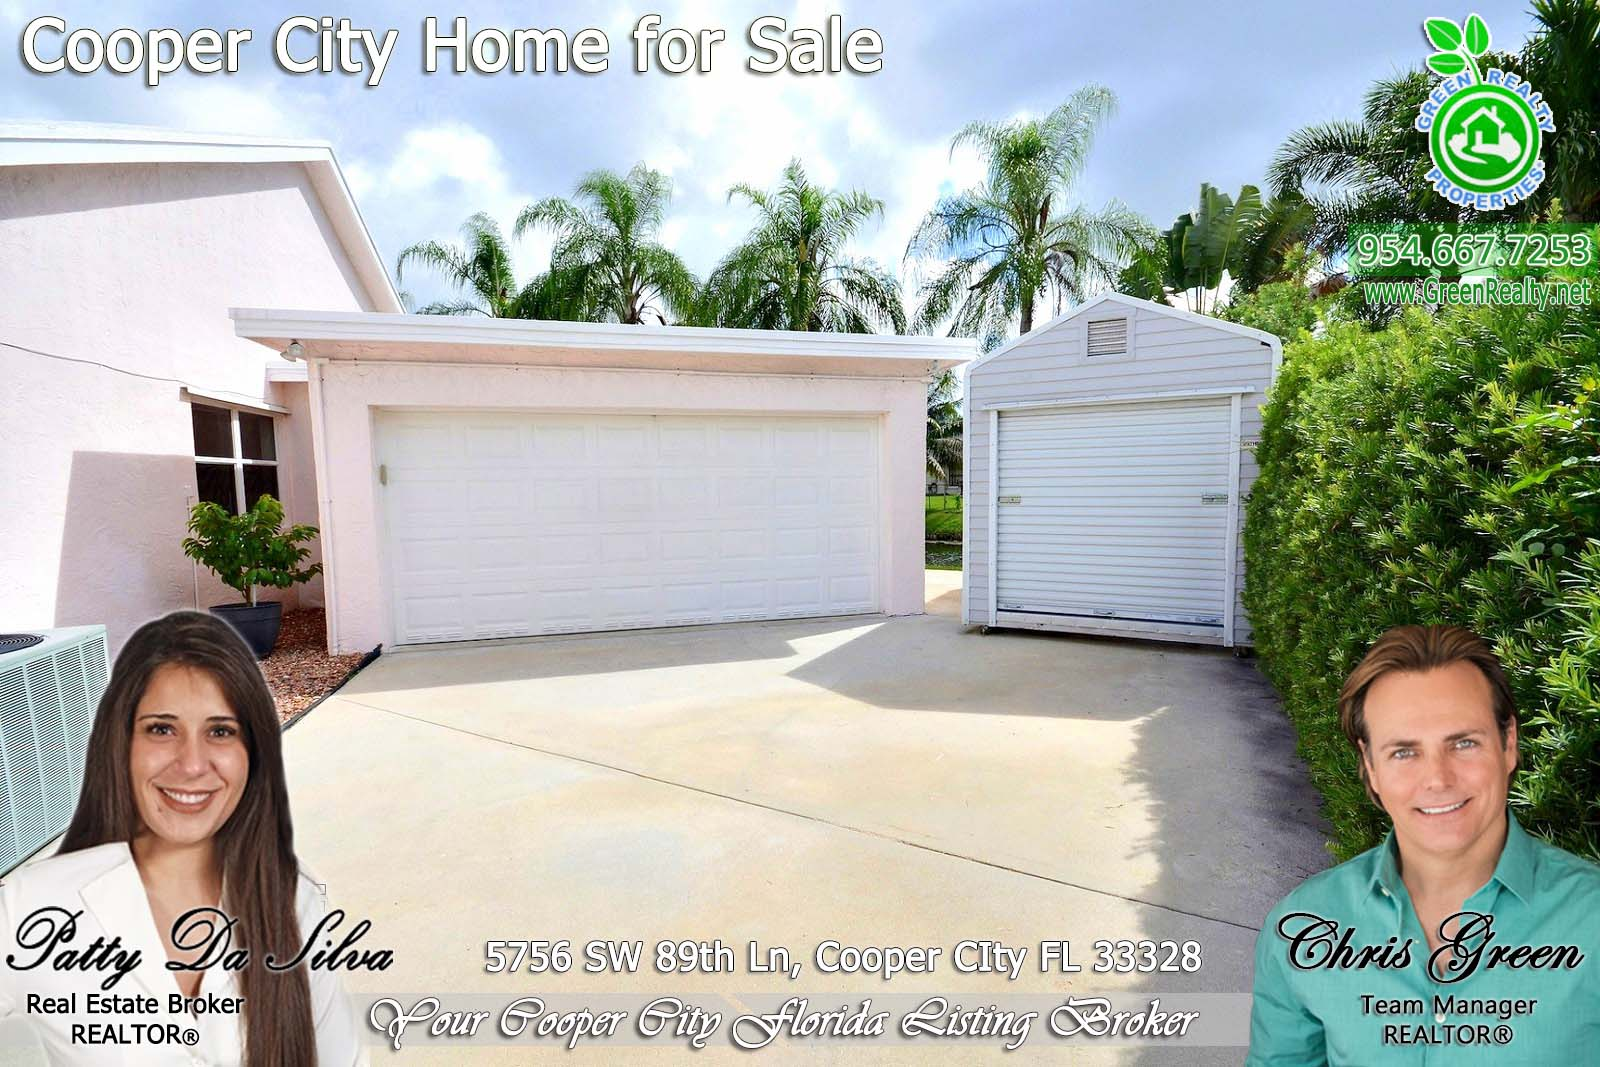 Coopers Pointe - Cooper City Florida Homes For Sale (6)